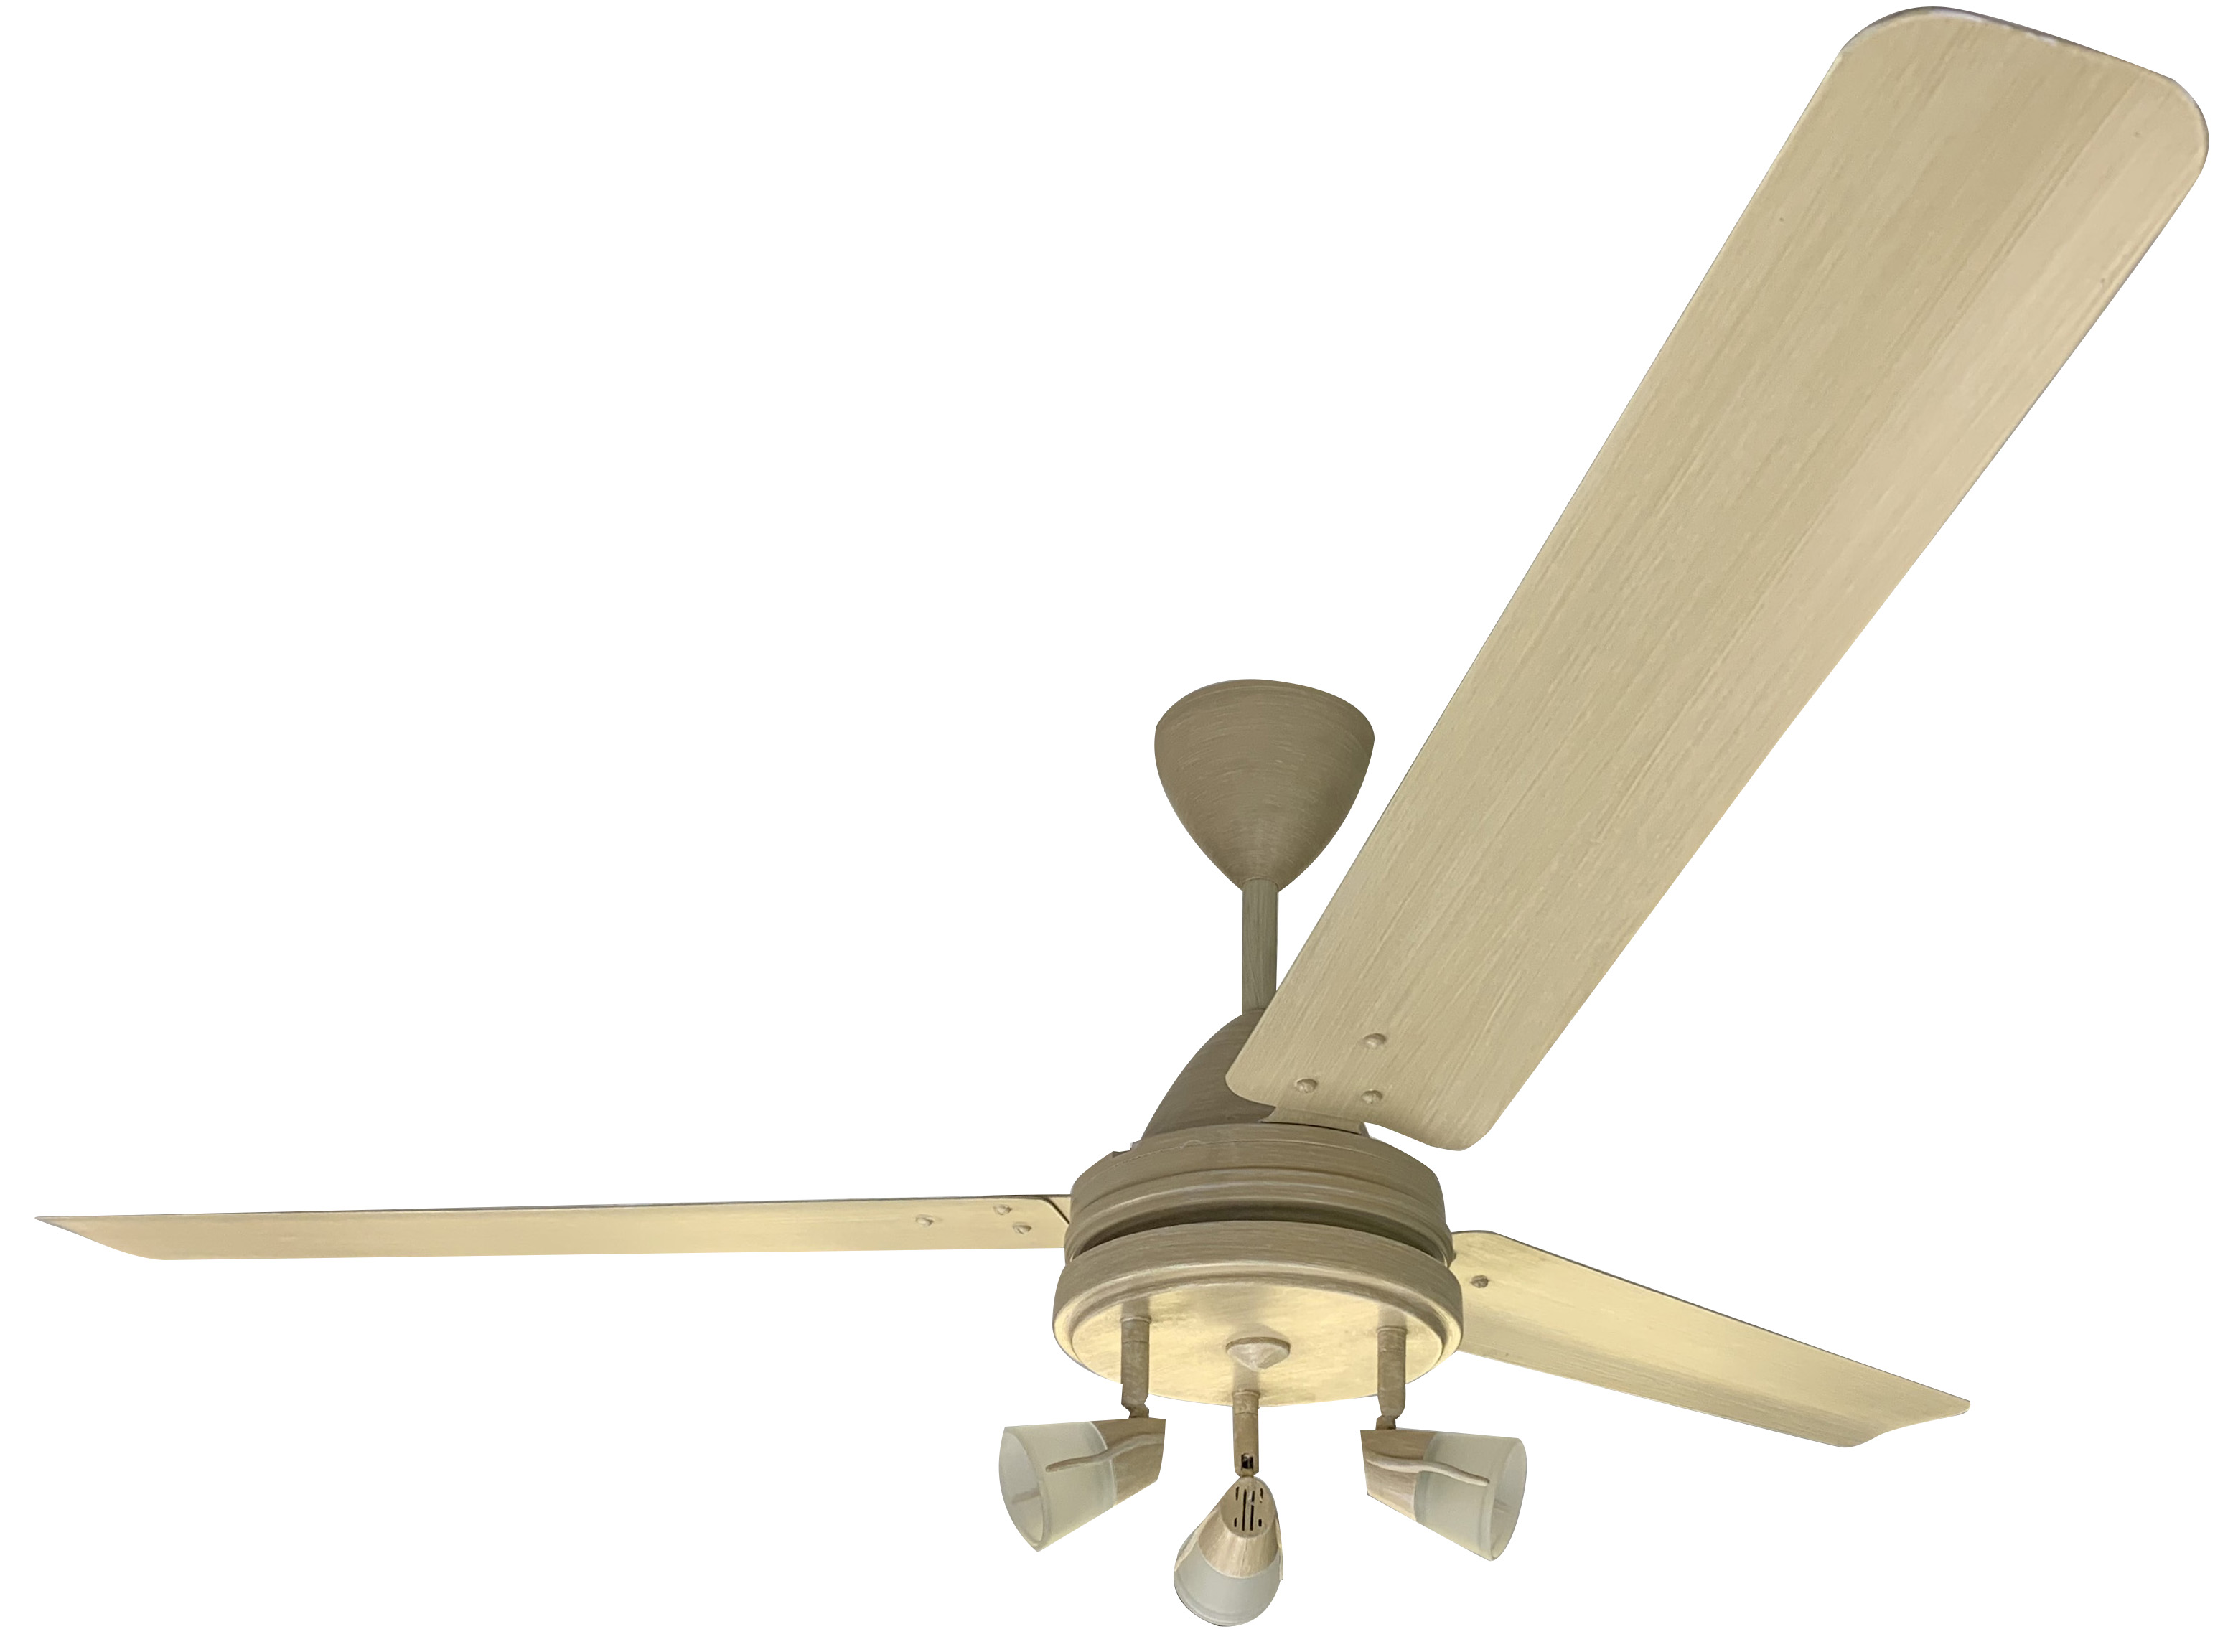 Motor High Breeze Biscuit Blade Aluminium 3 1400mm Biscuit +Bella.jpg